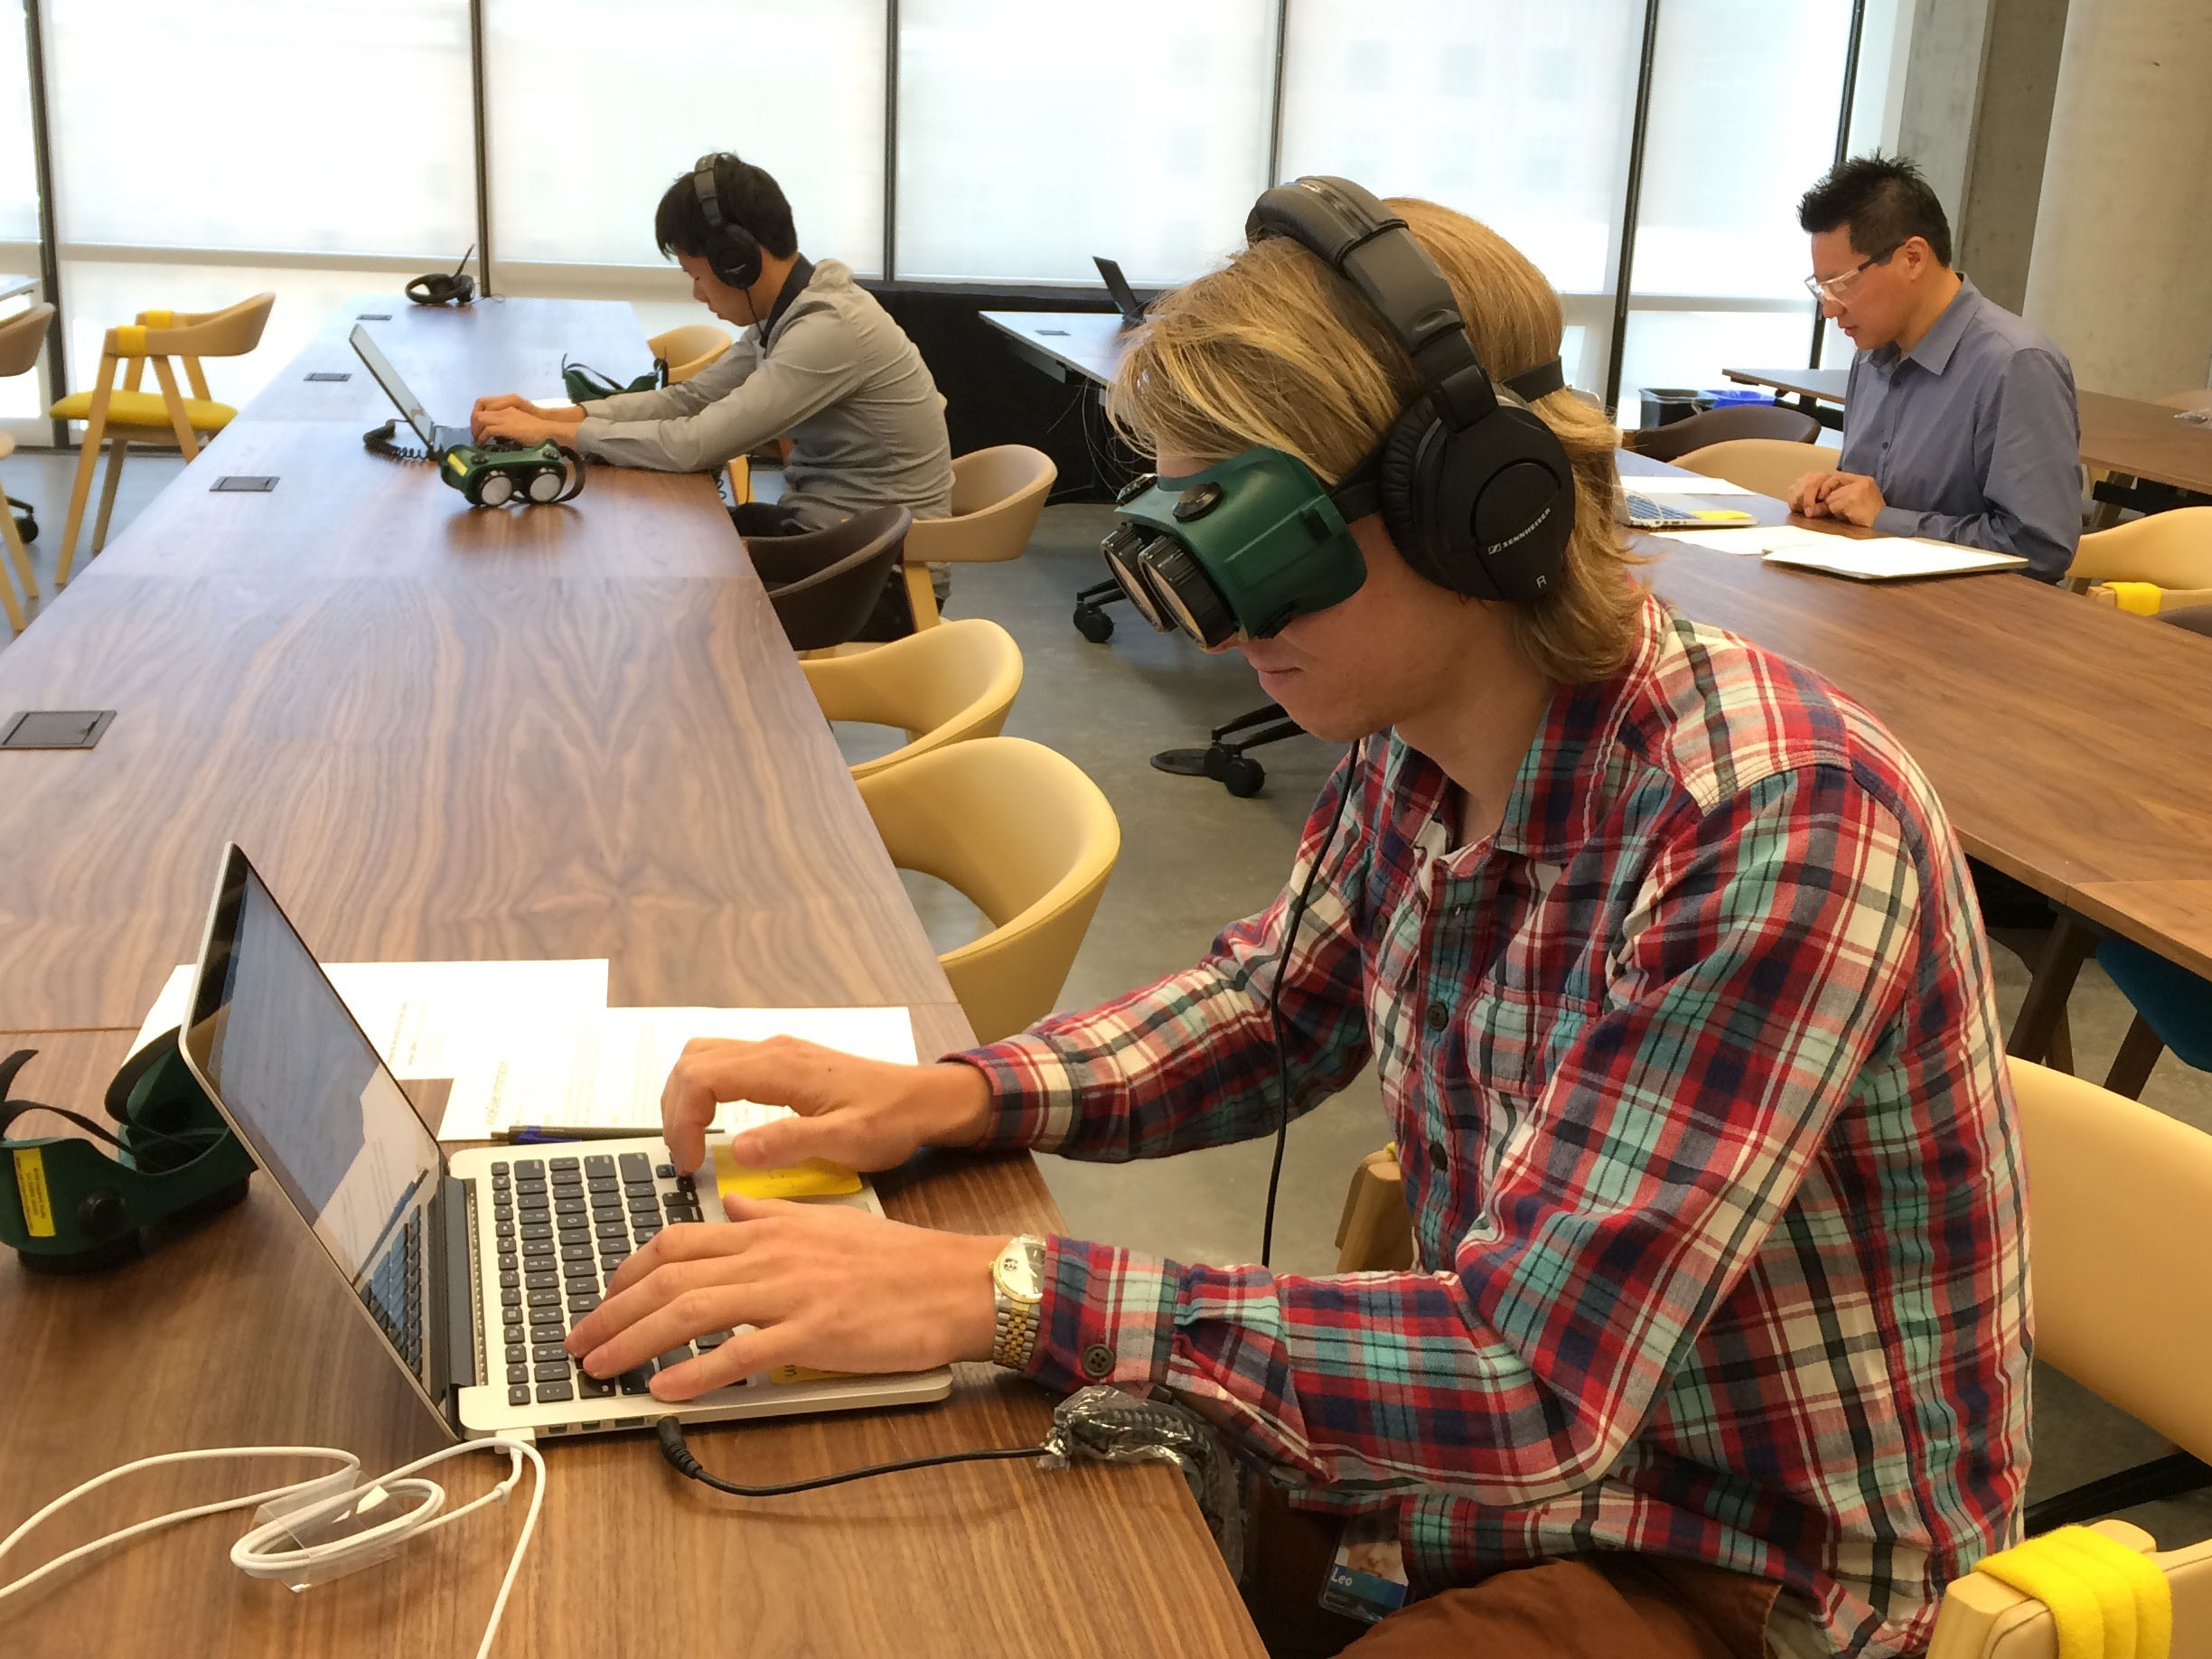 At another Assistive Technology Lab, someone wears headphones and special goggles that obscure their vision while they navigate dropbox.com with a screen reader.